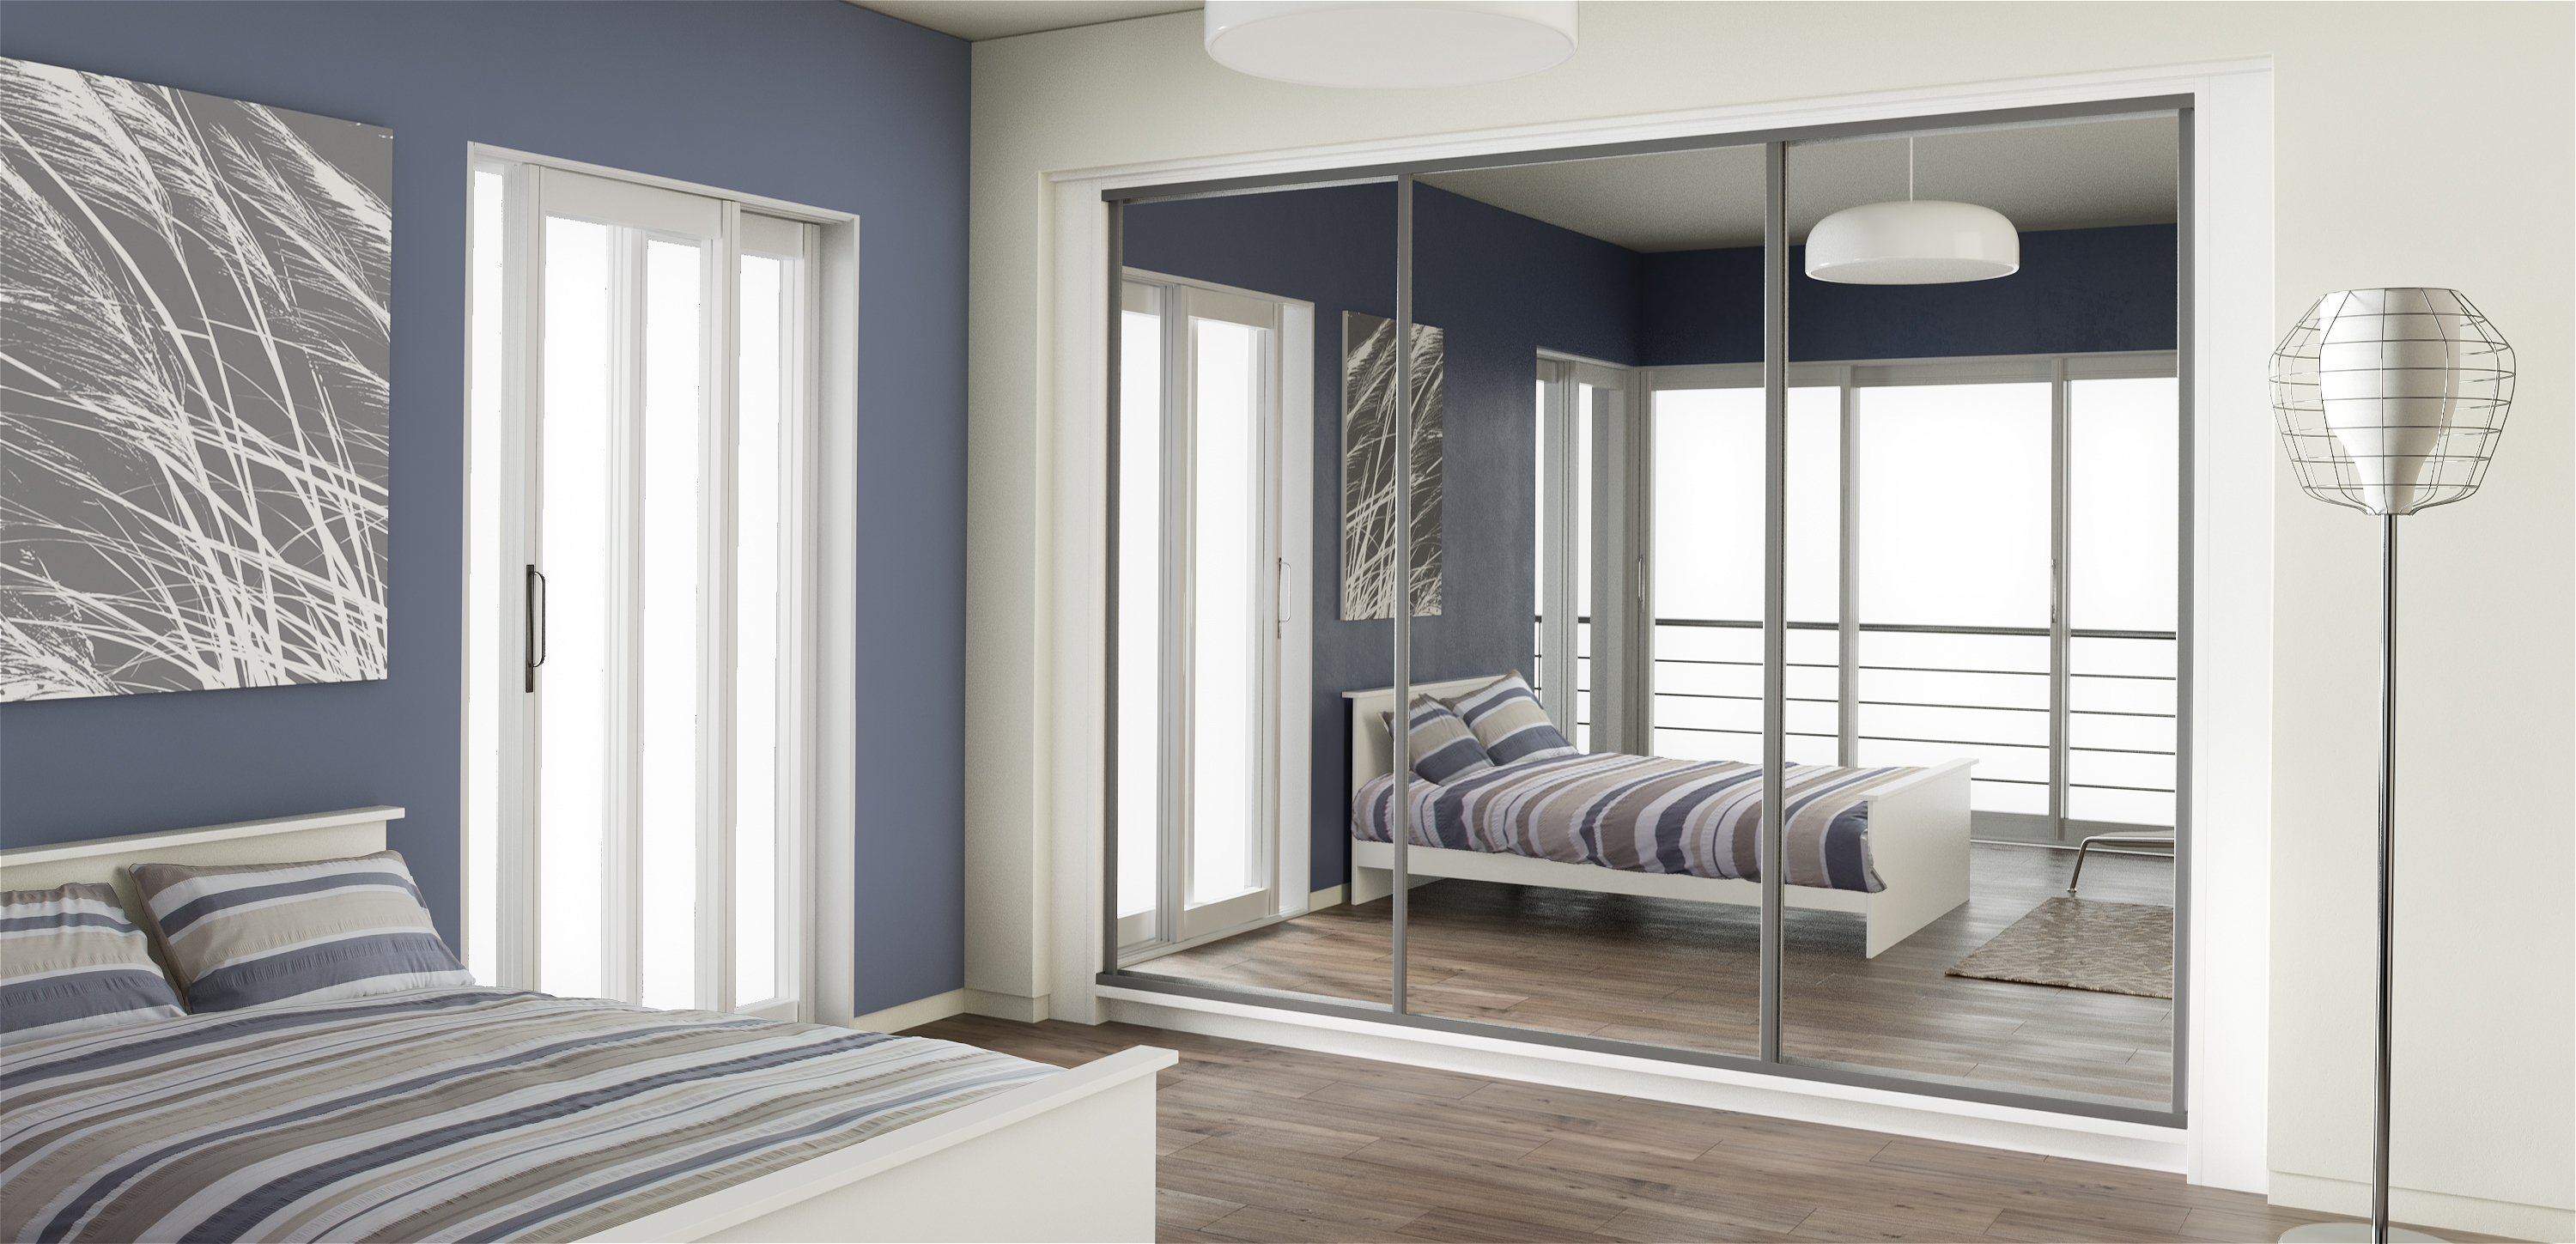 Most Popular Mirror Design Ideas: Robes Brand Bedroom Mirrored Wardrobes Lens Within Full Mirrored Wardrobes (View 7 of 15)